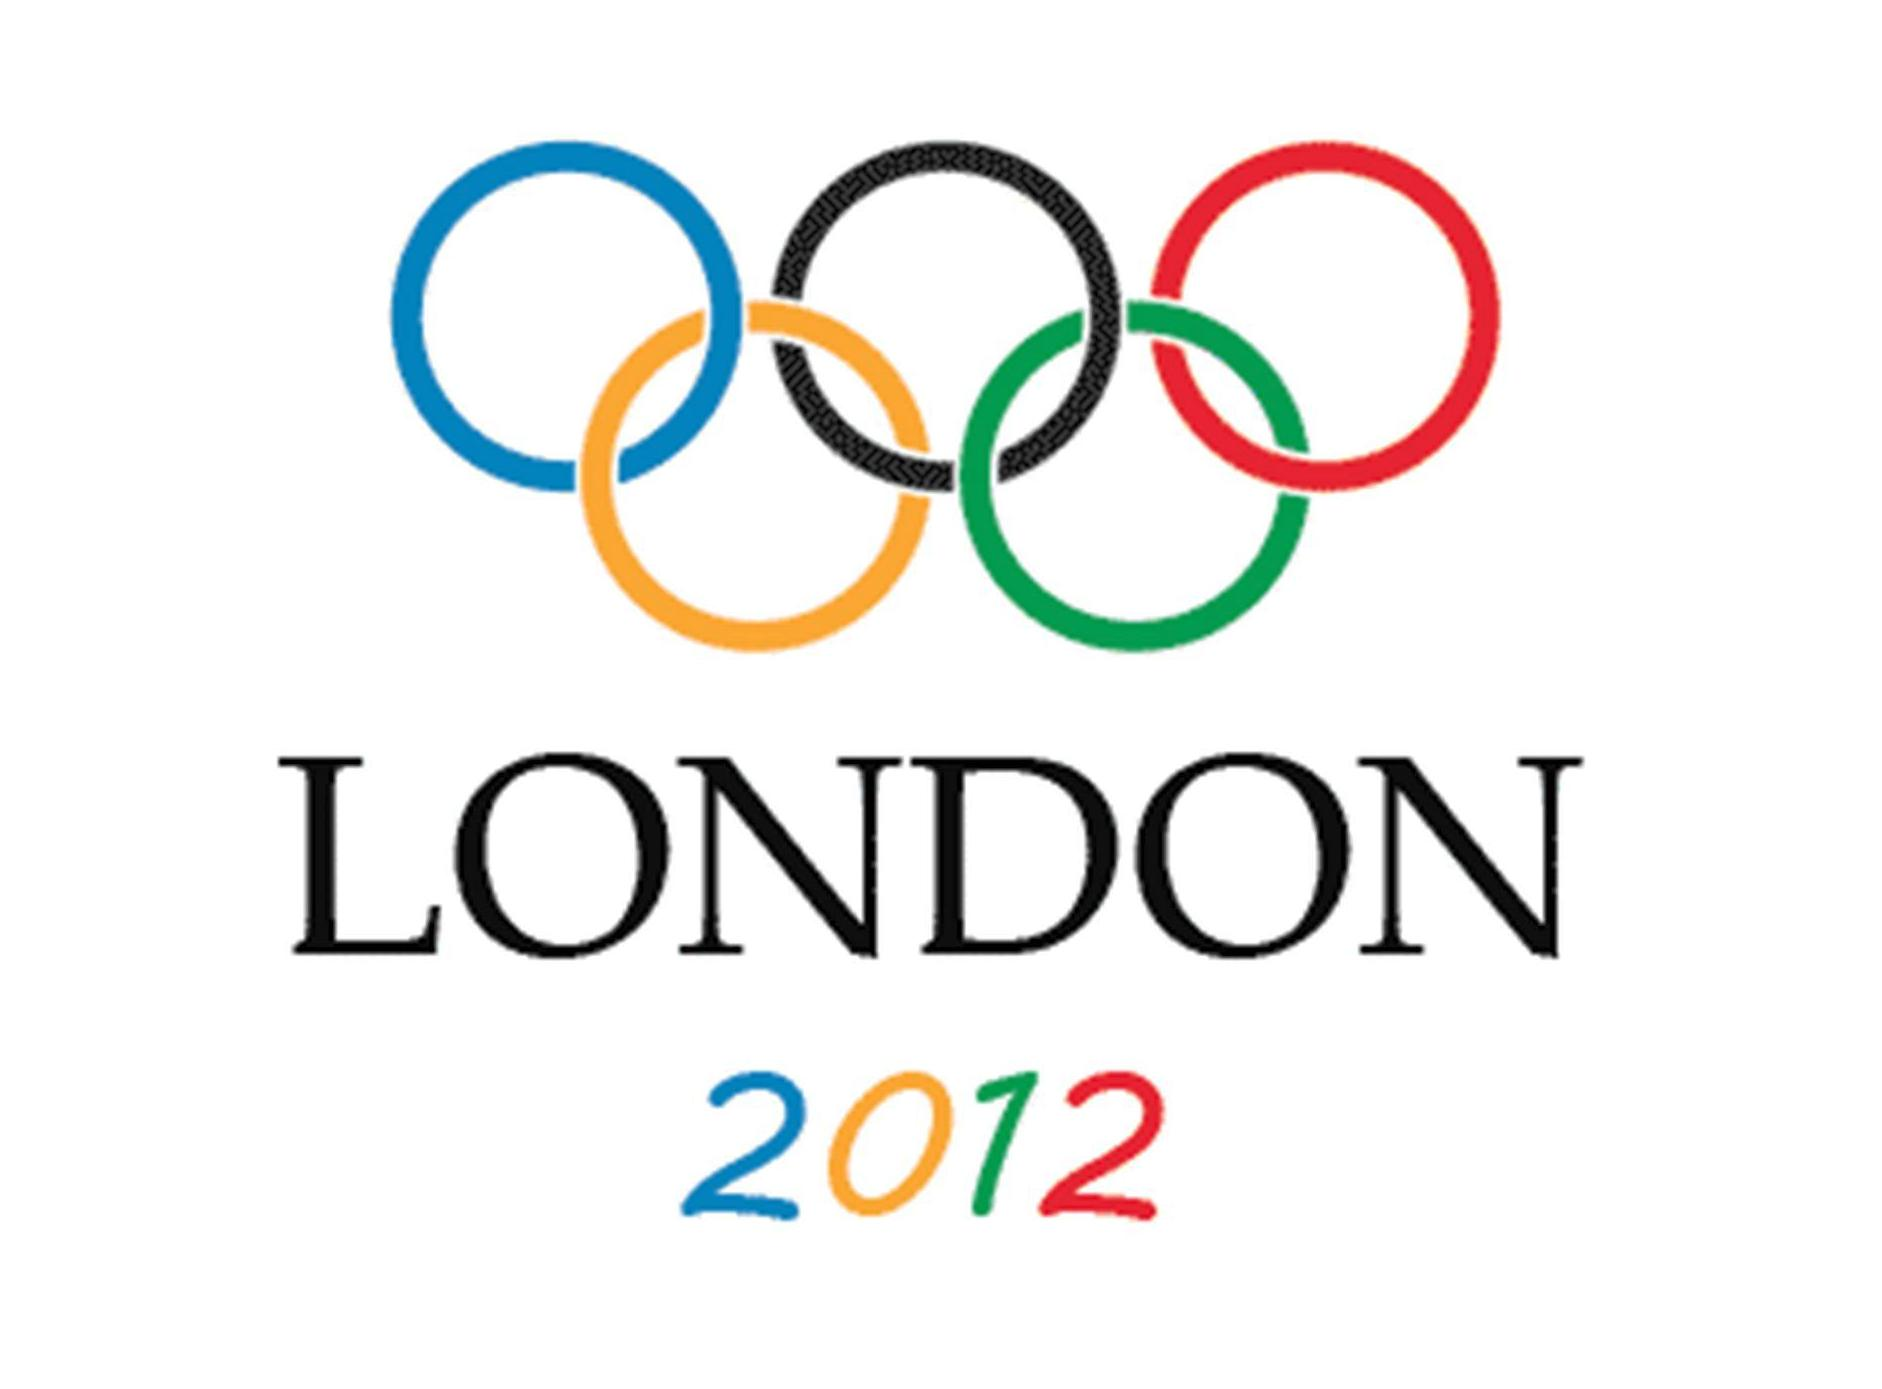 London 2012 Olympic Games Official Souvenir Programme